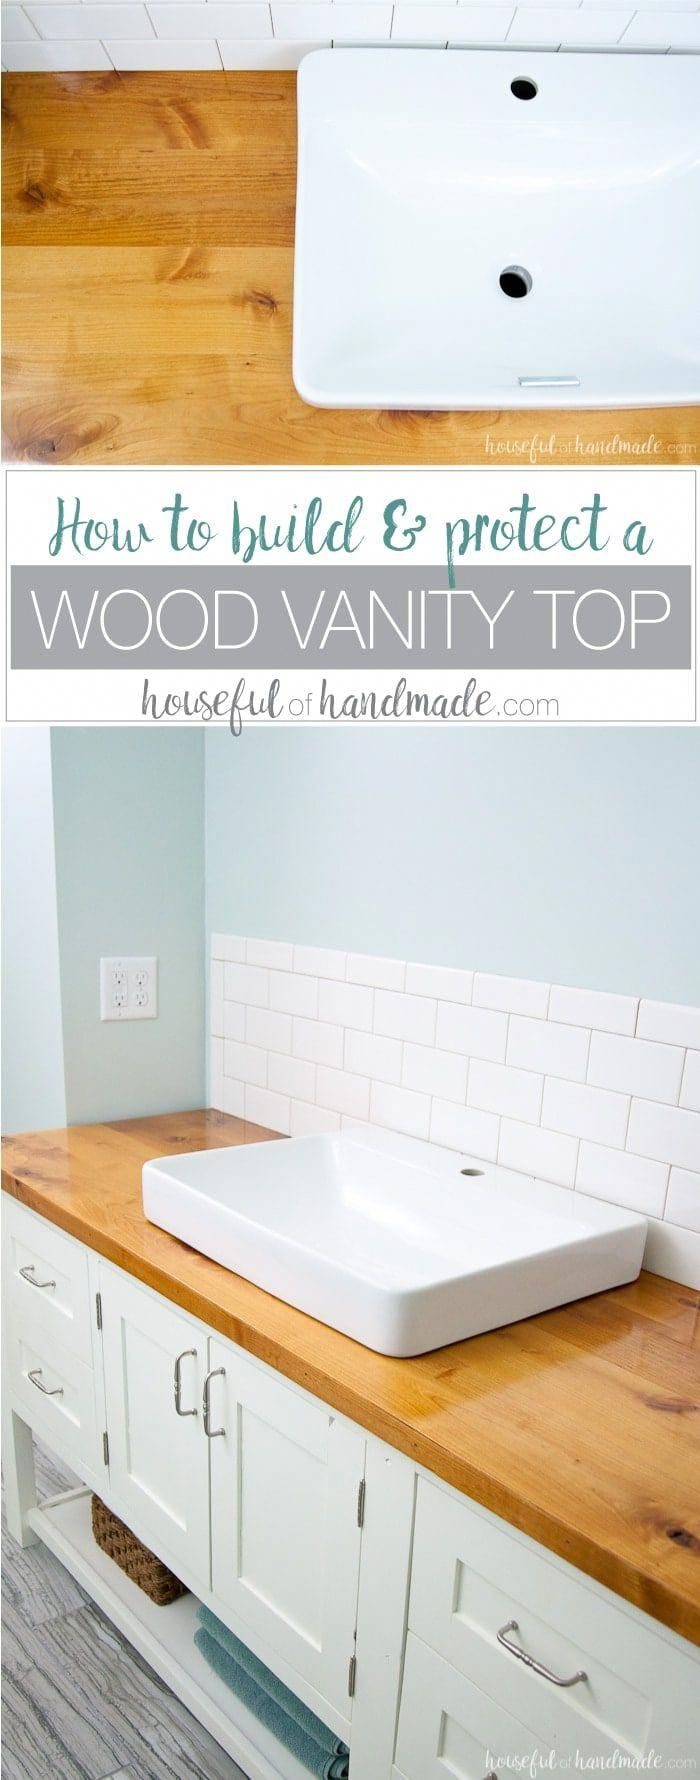 How to Build & Protect a Wood Vanity Top Houseful of